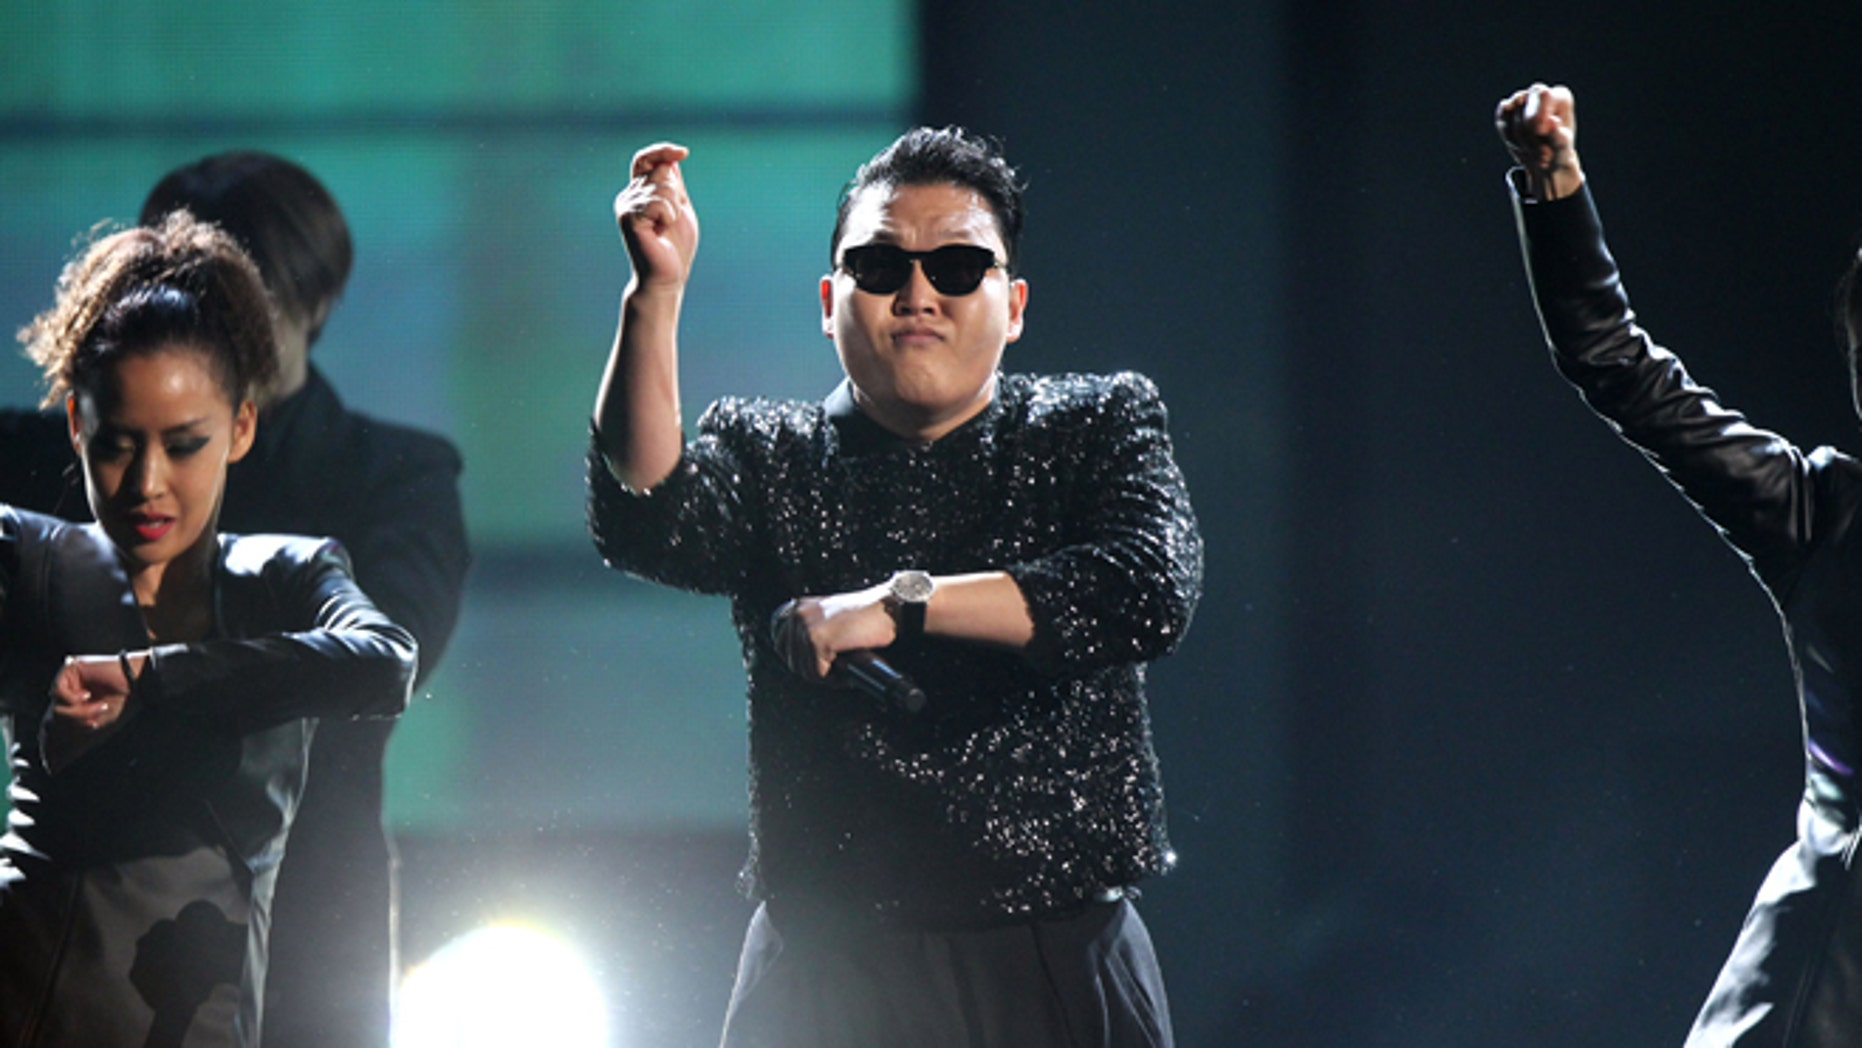 """PSY performs """"Gangnam Style"""" at the 40th Anniversary American Music Awards on Sunday, Nov. 18, 2012, in Los Angeles. (Photo by Matt Sayles/Invision/AP)"""